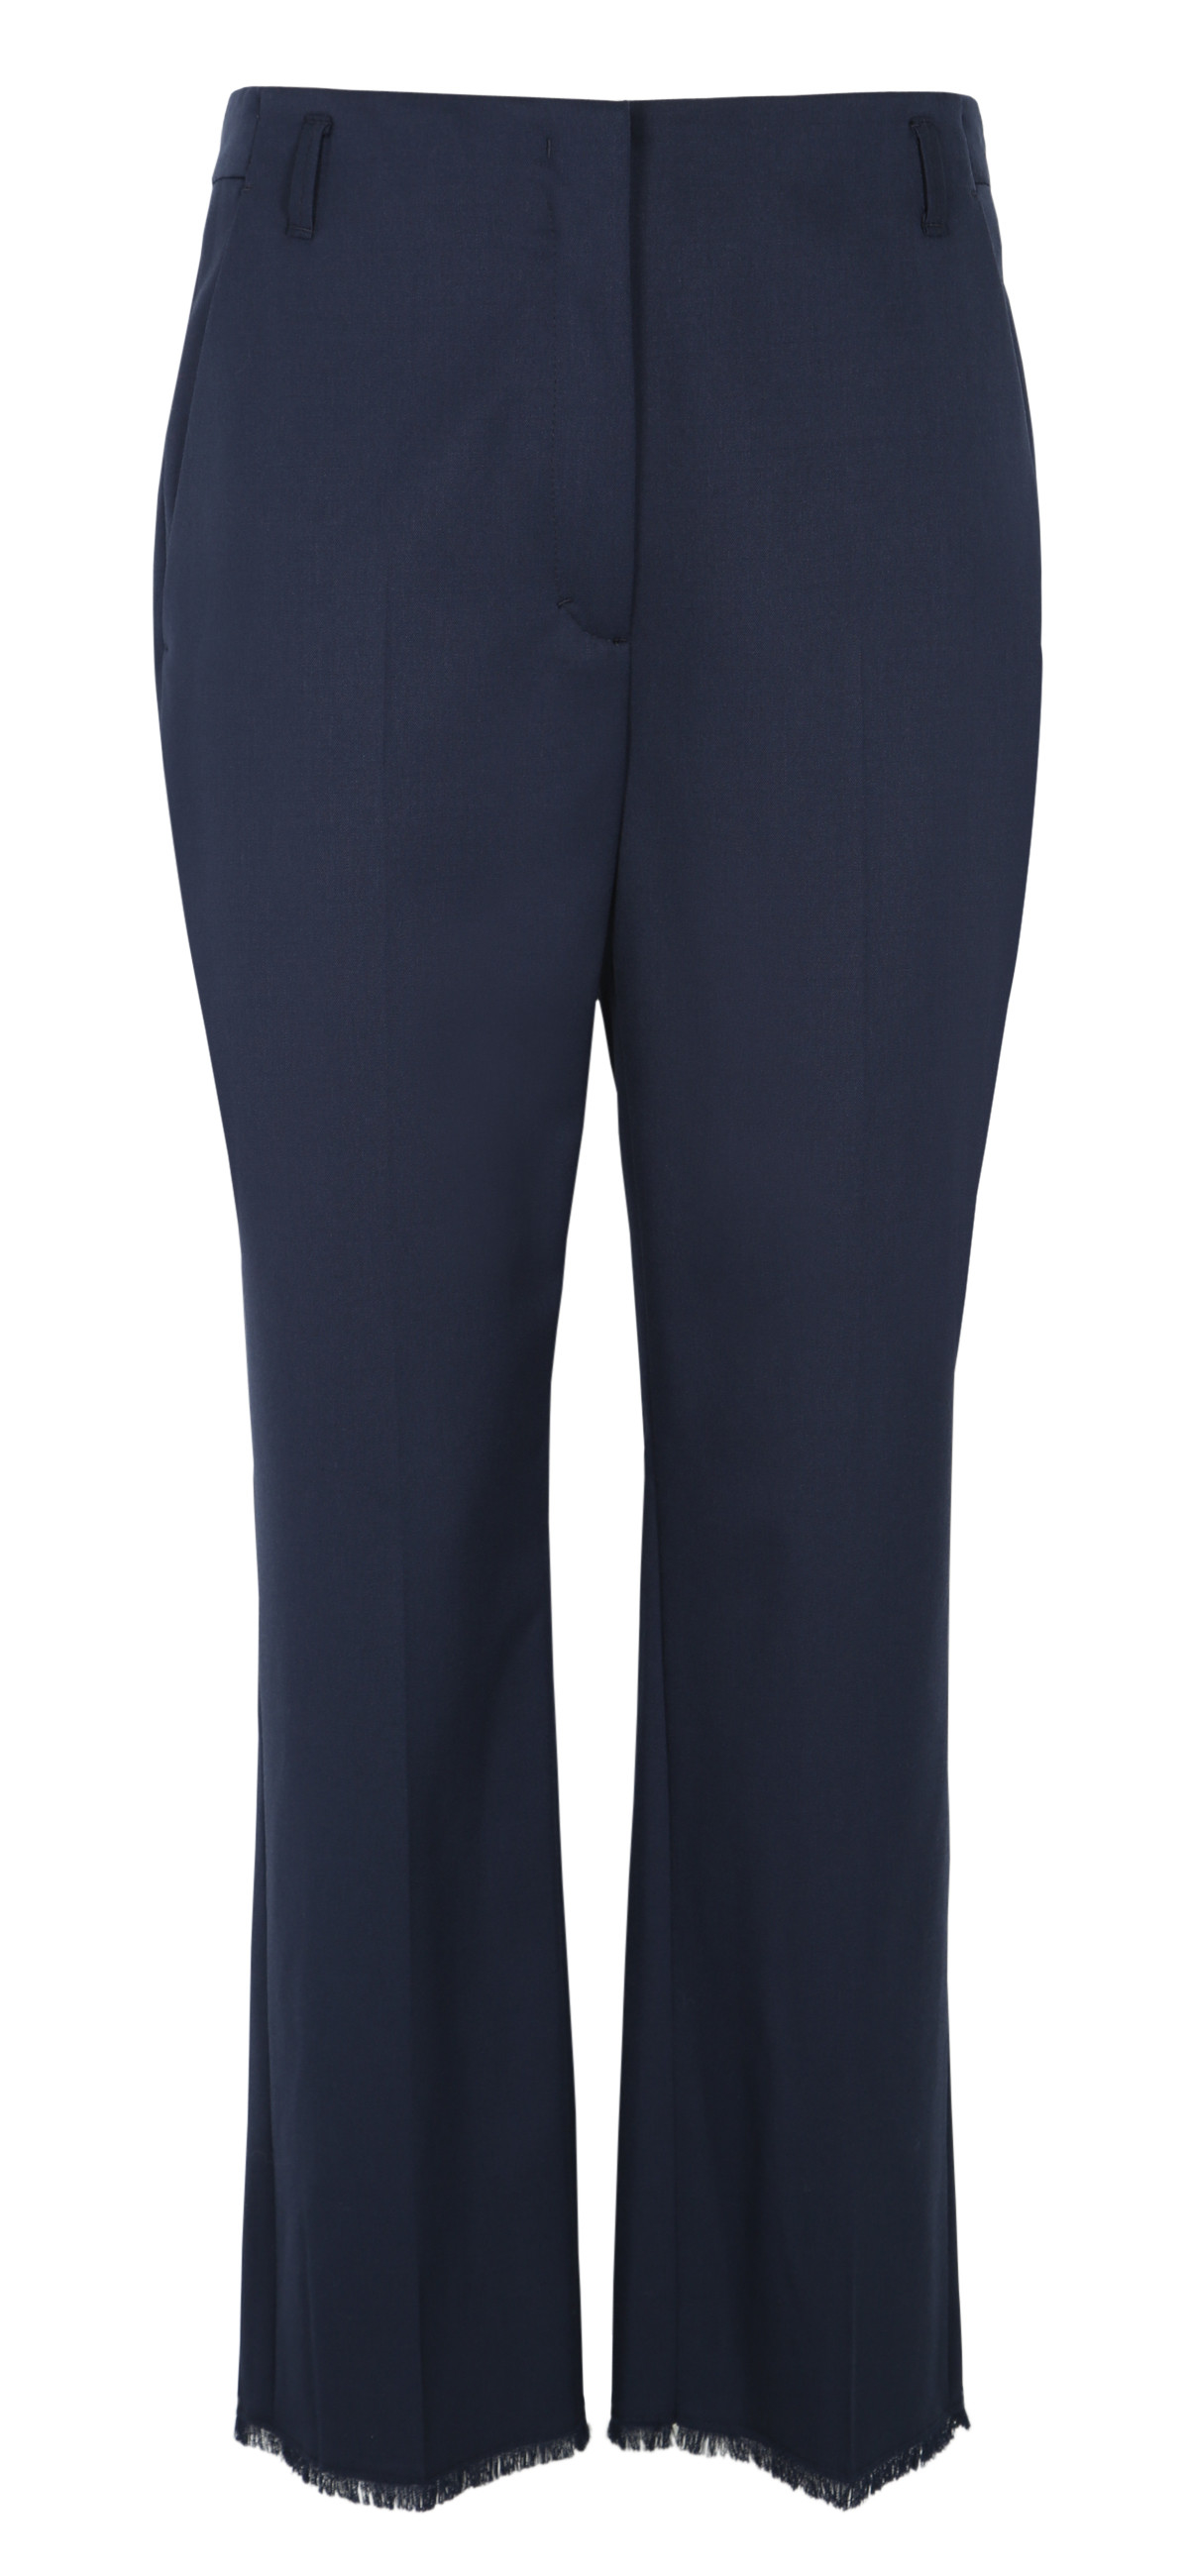 Dorothee Schumacher Cool Ambition Cropped Flared Pants in ...